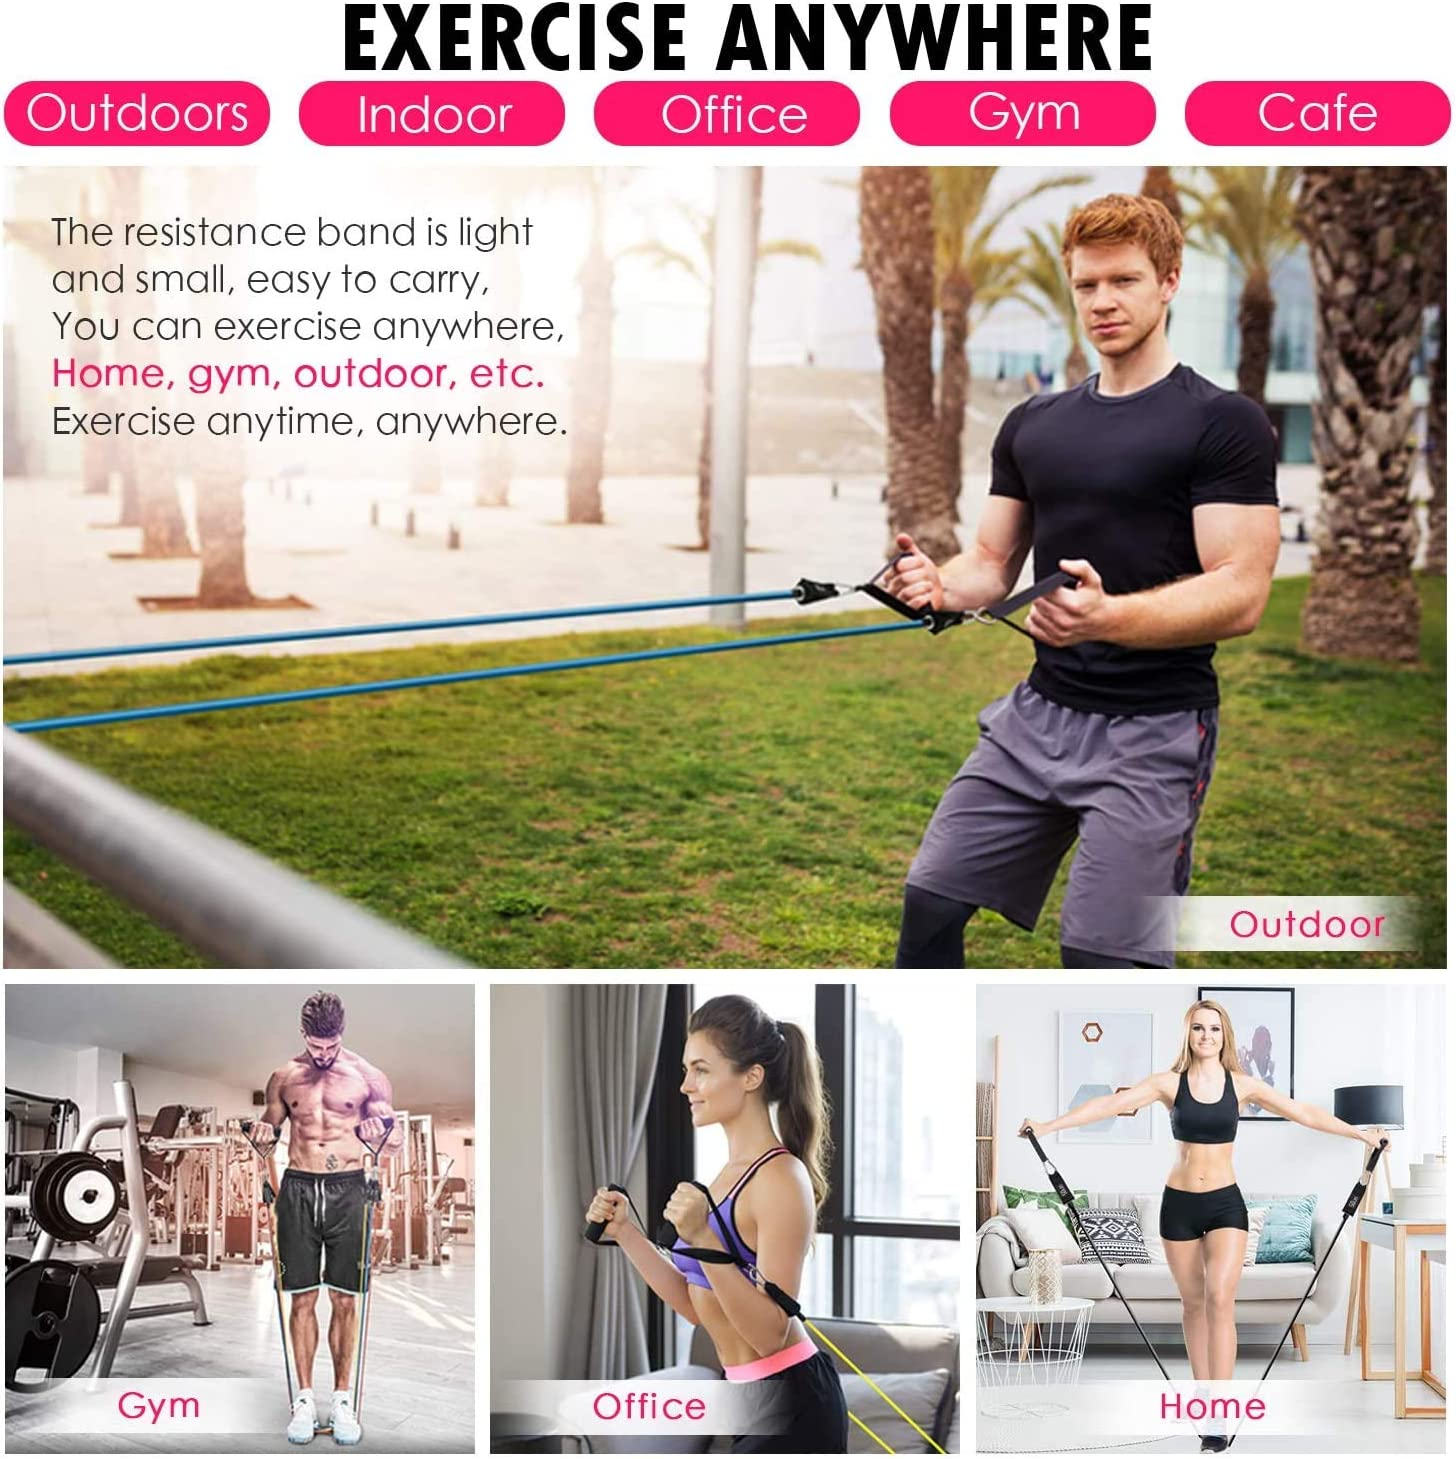 Home Workouts Resistance Band Set Carrying Case /& Guide Ebook for Resistance Training Include 5 Stackable Exercise Bands with Door Anchor Physical Therapy Ankle Straps